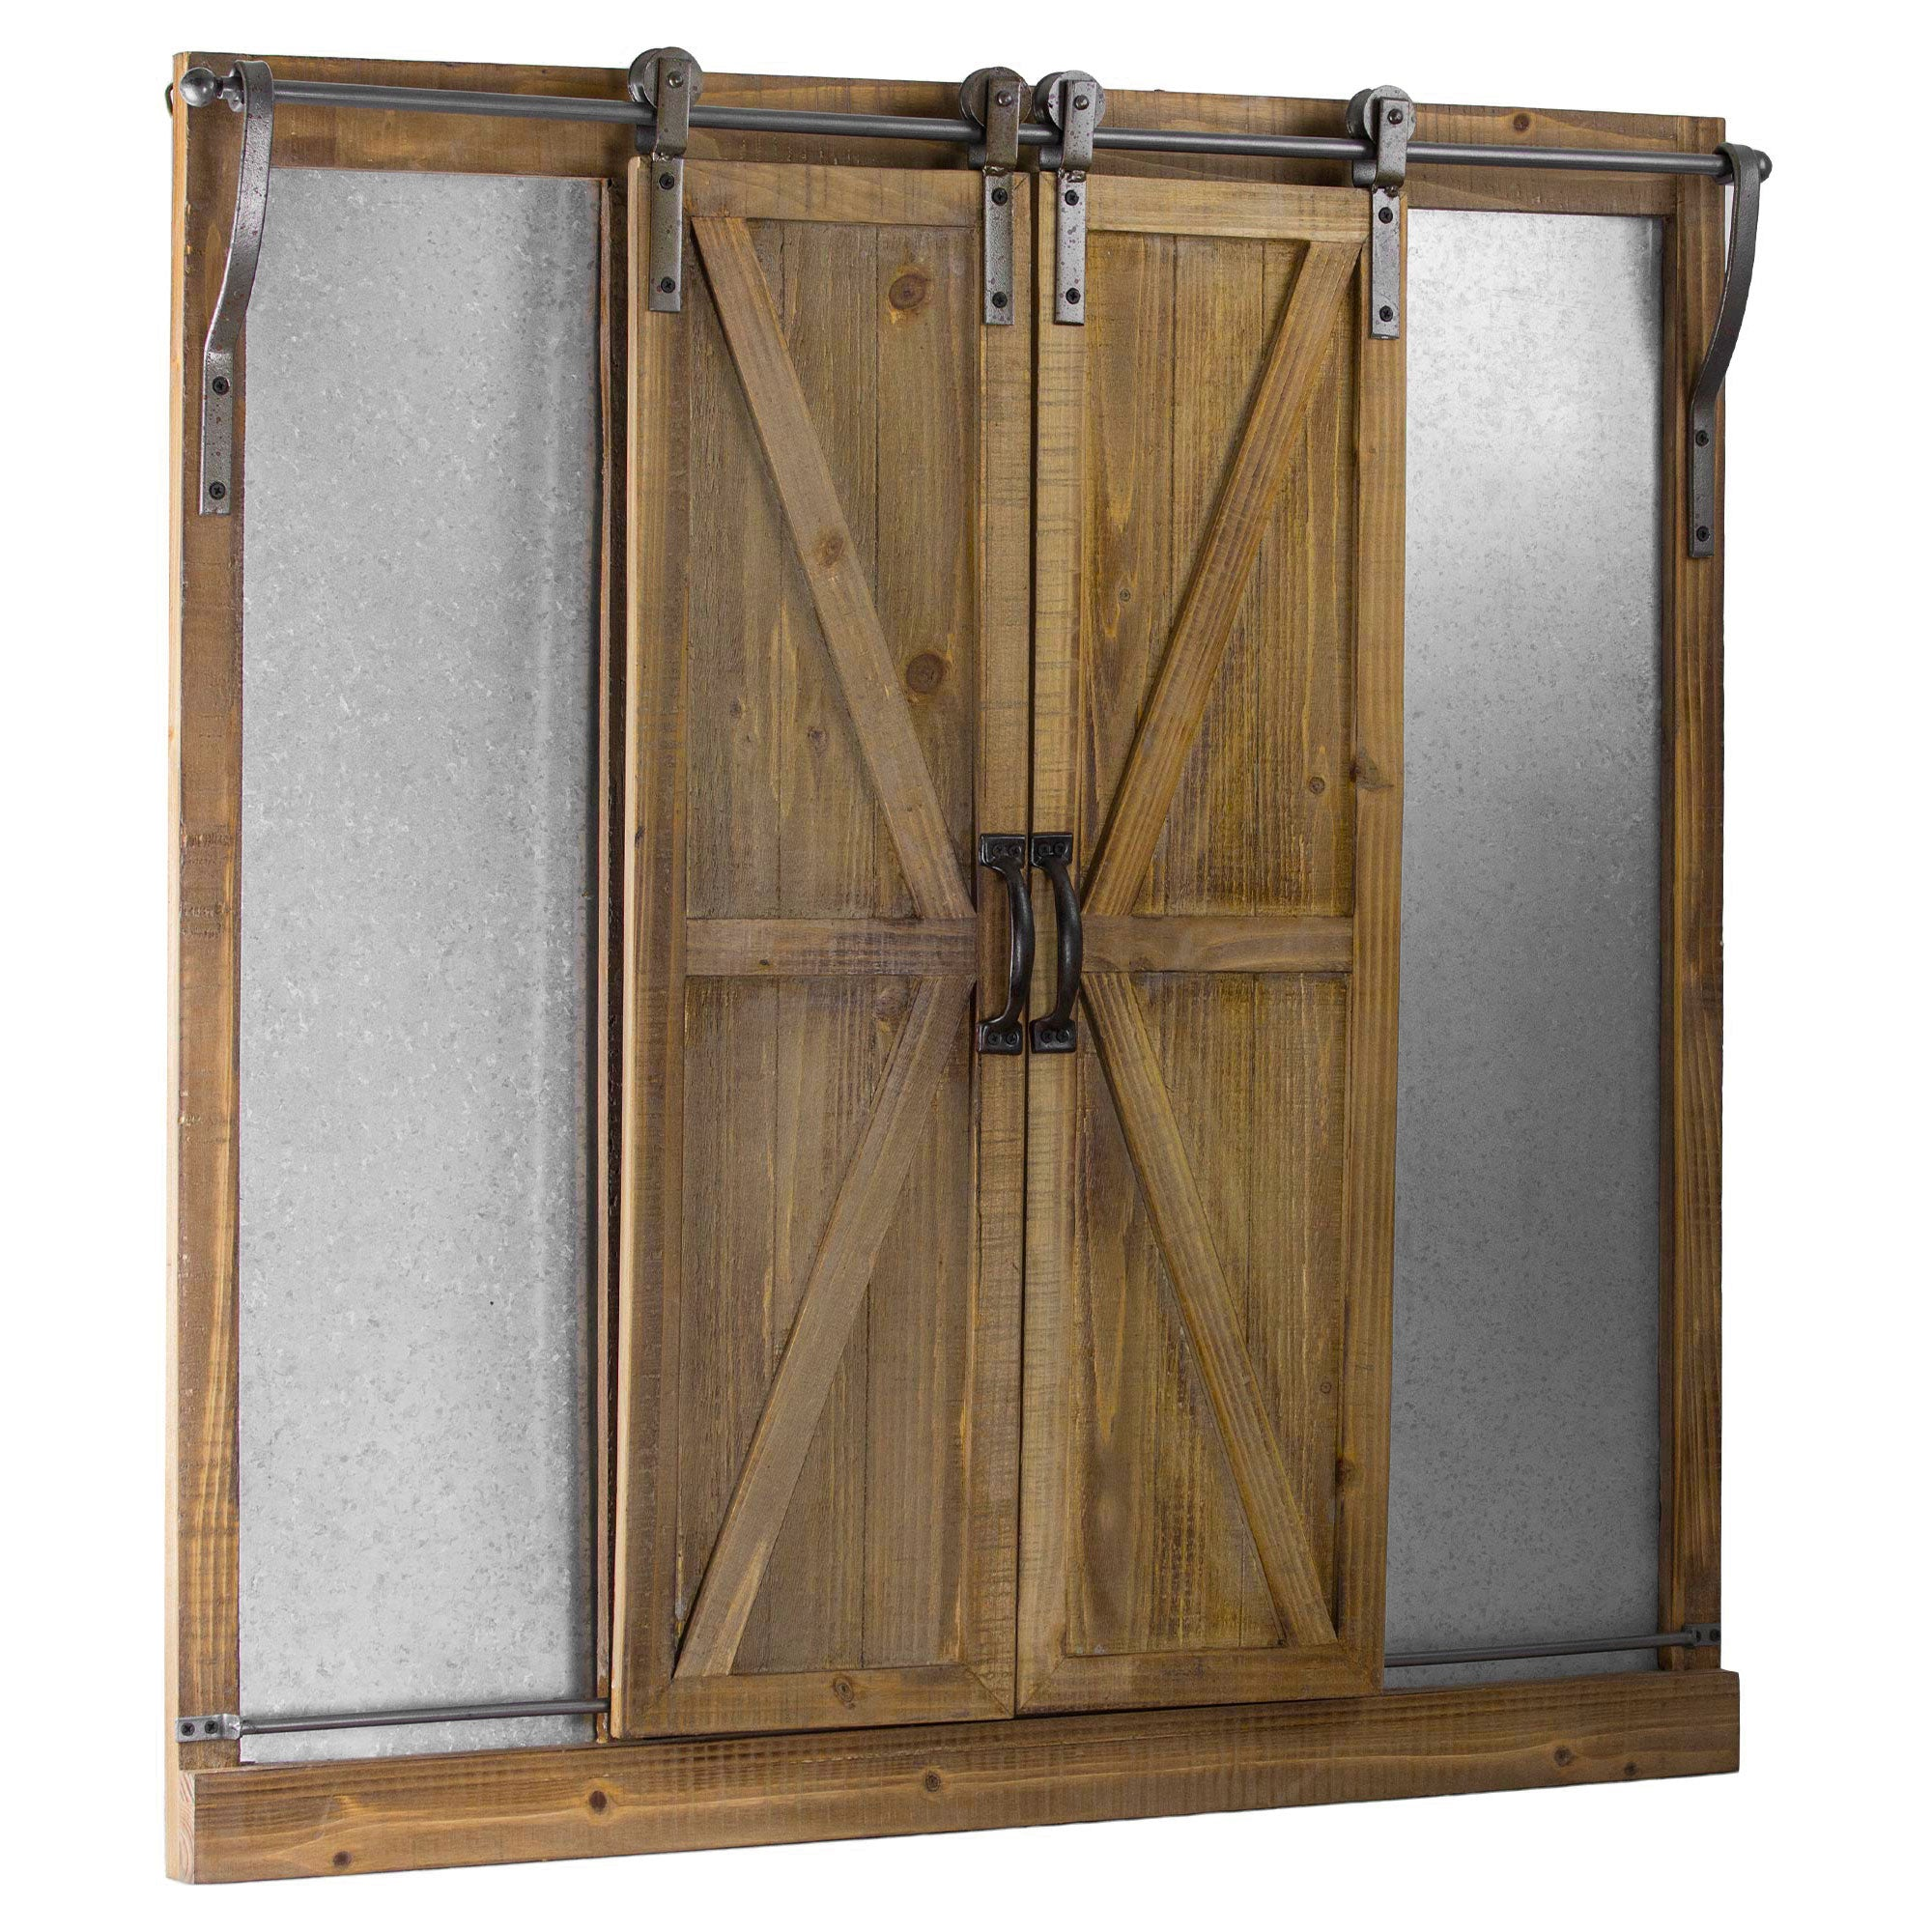 fashioned piece and hardware metal attractive designs of for door slide barns barn with wooden old sliding rustic furniture kinds